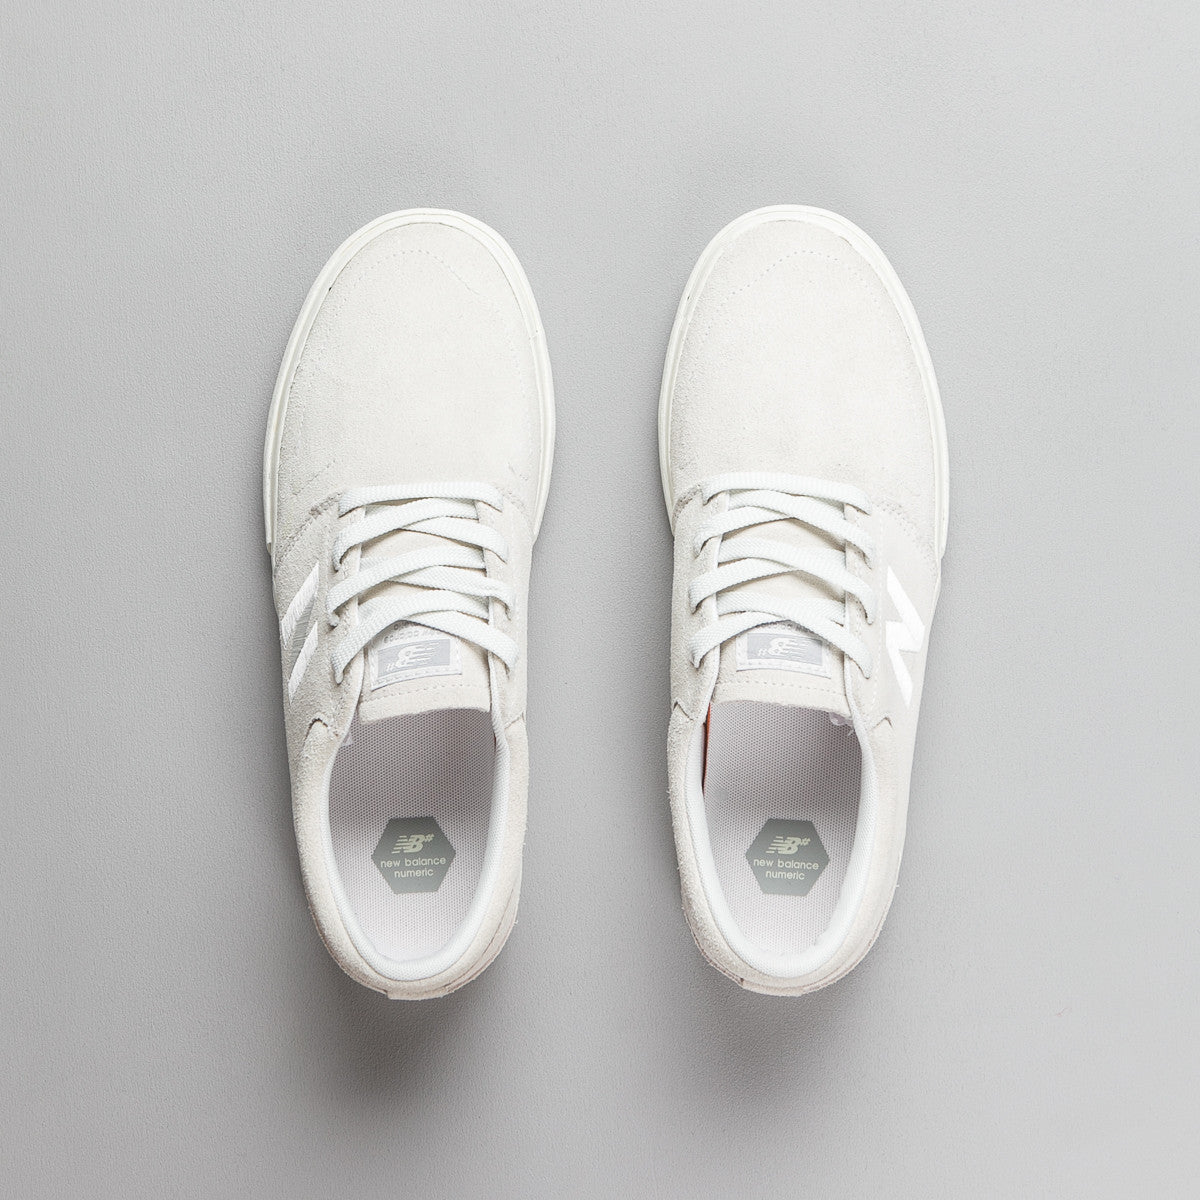 uk availability dfb22 fcc18 new-balance-numeric-brighton-344-shoes-white-light-grey-7.jpg